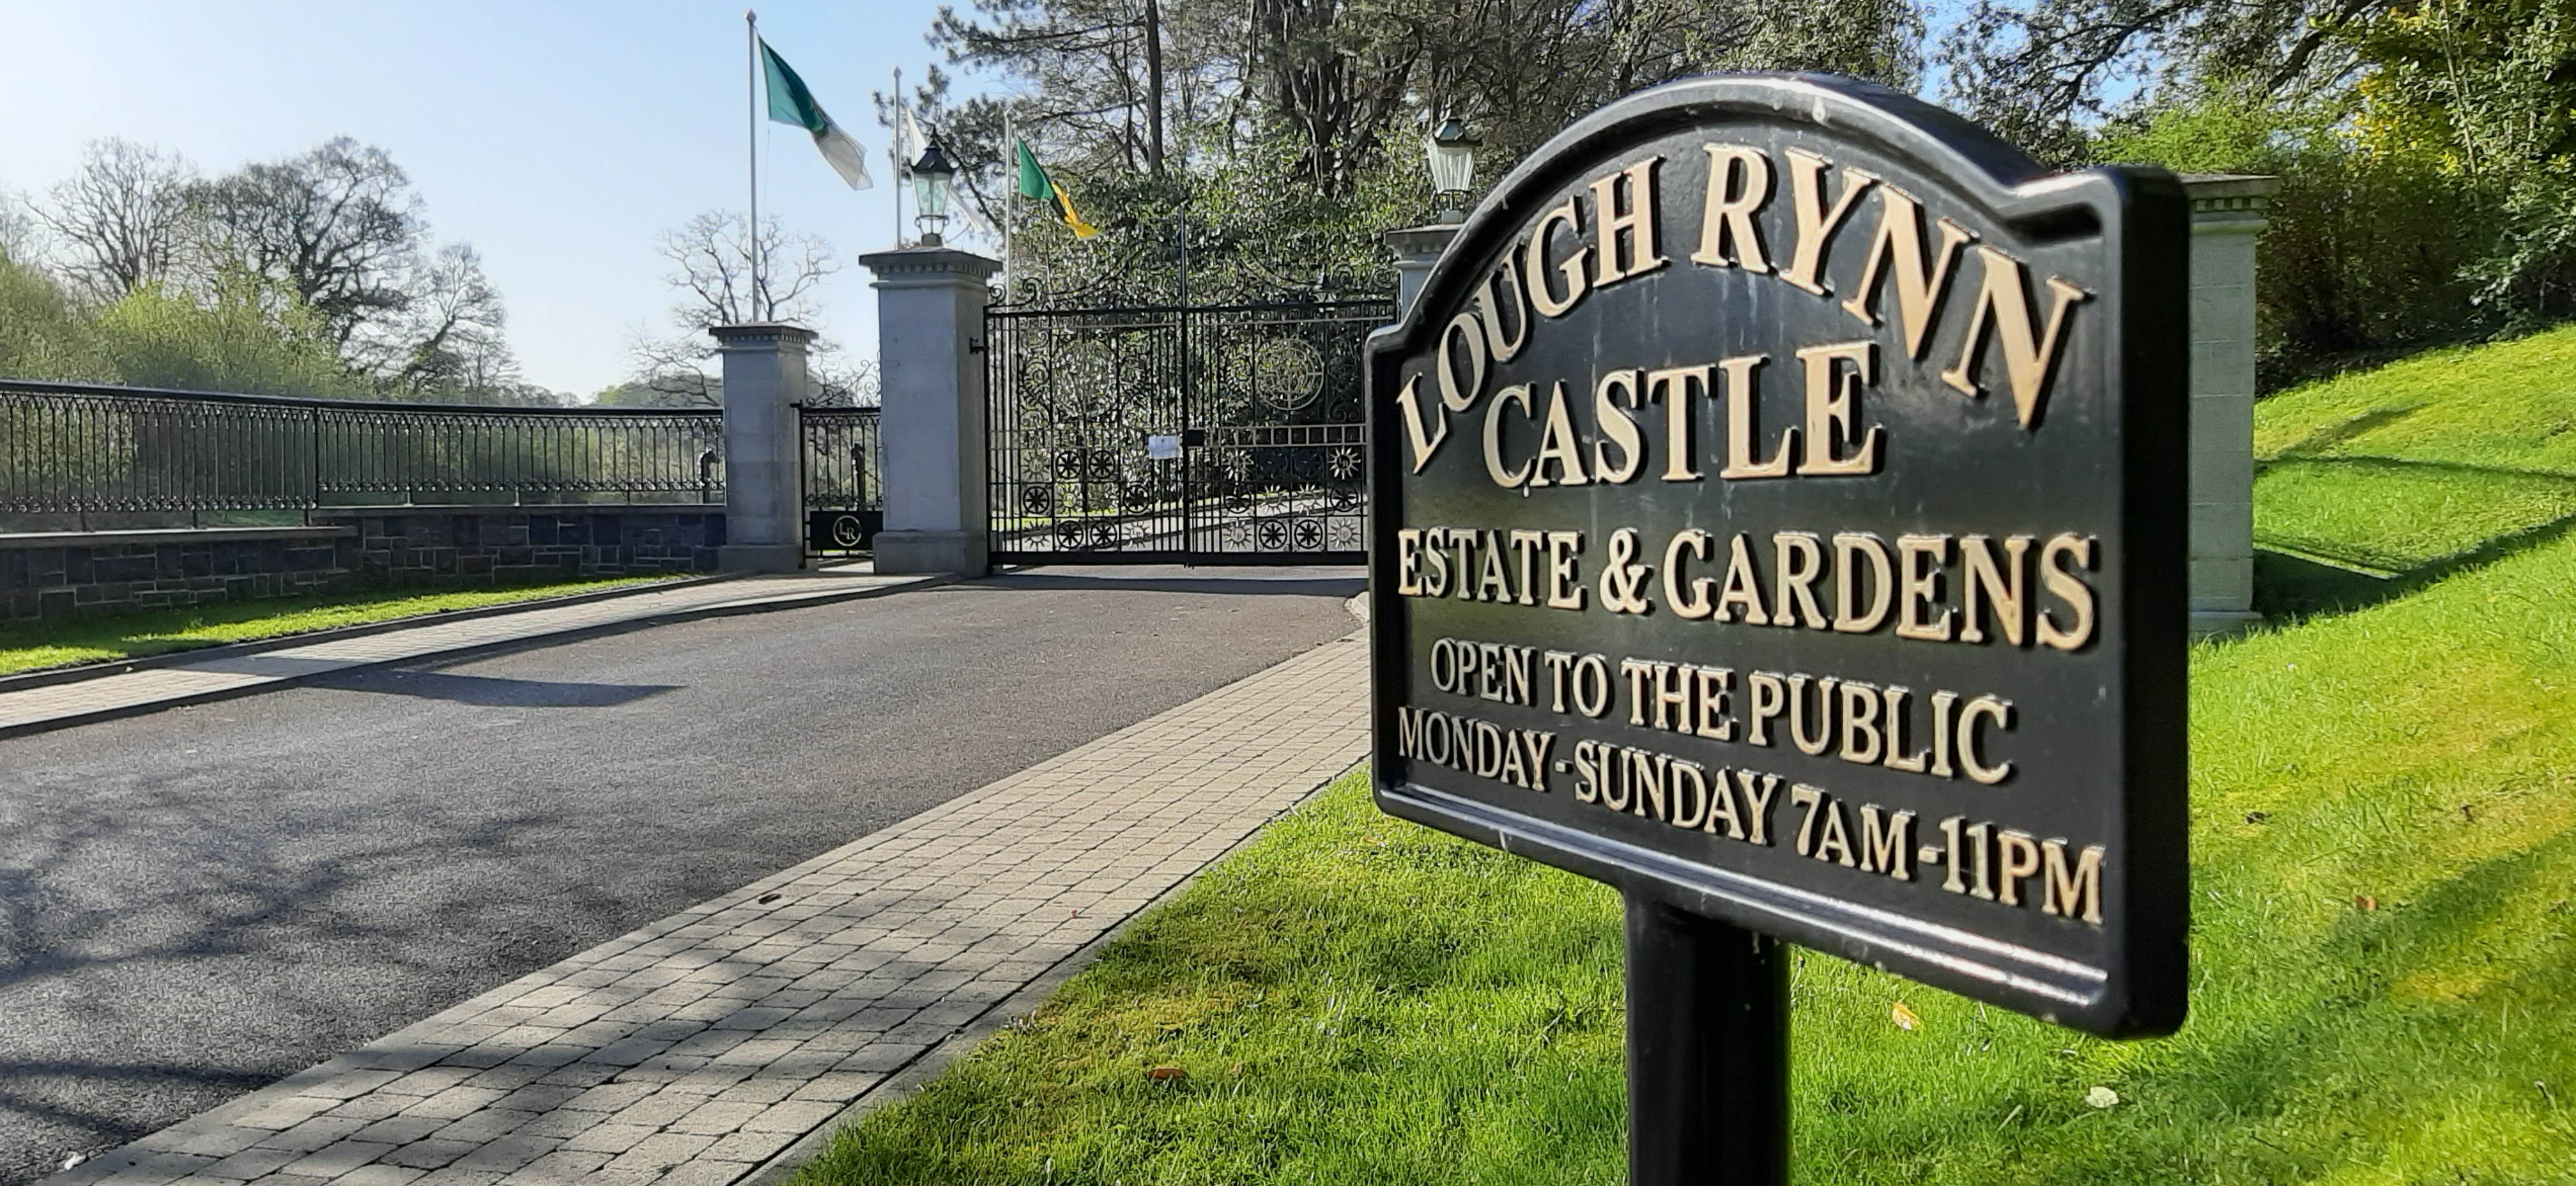 lough rynn closed